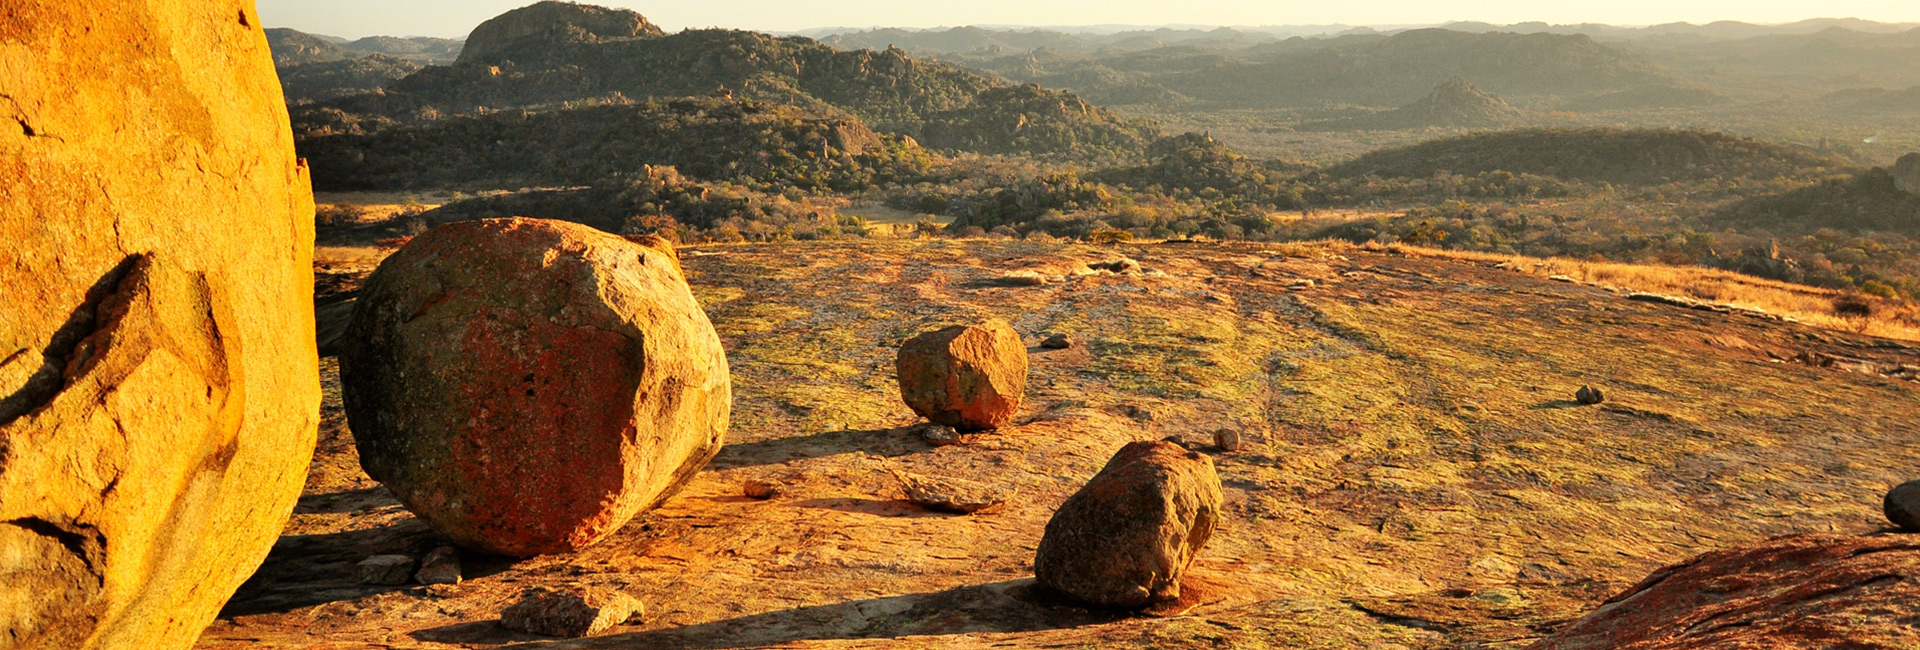 Matobo National Park Day Trip From Bulawayo